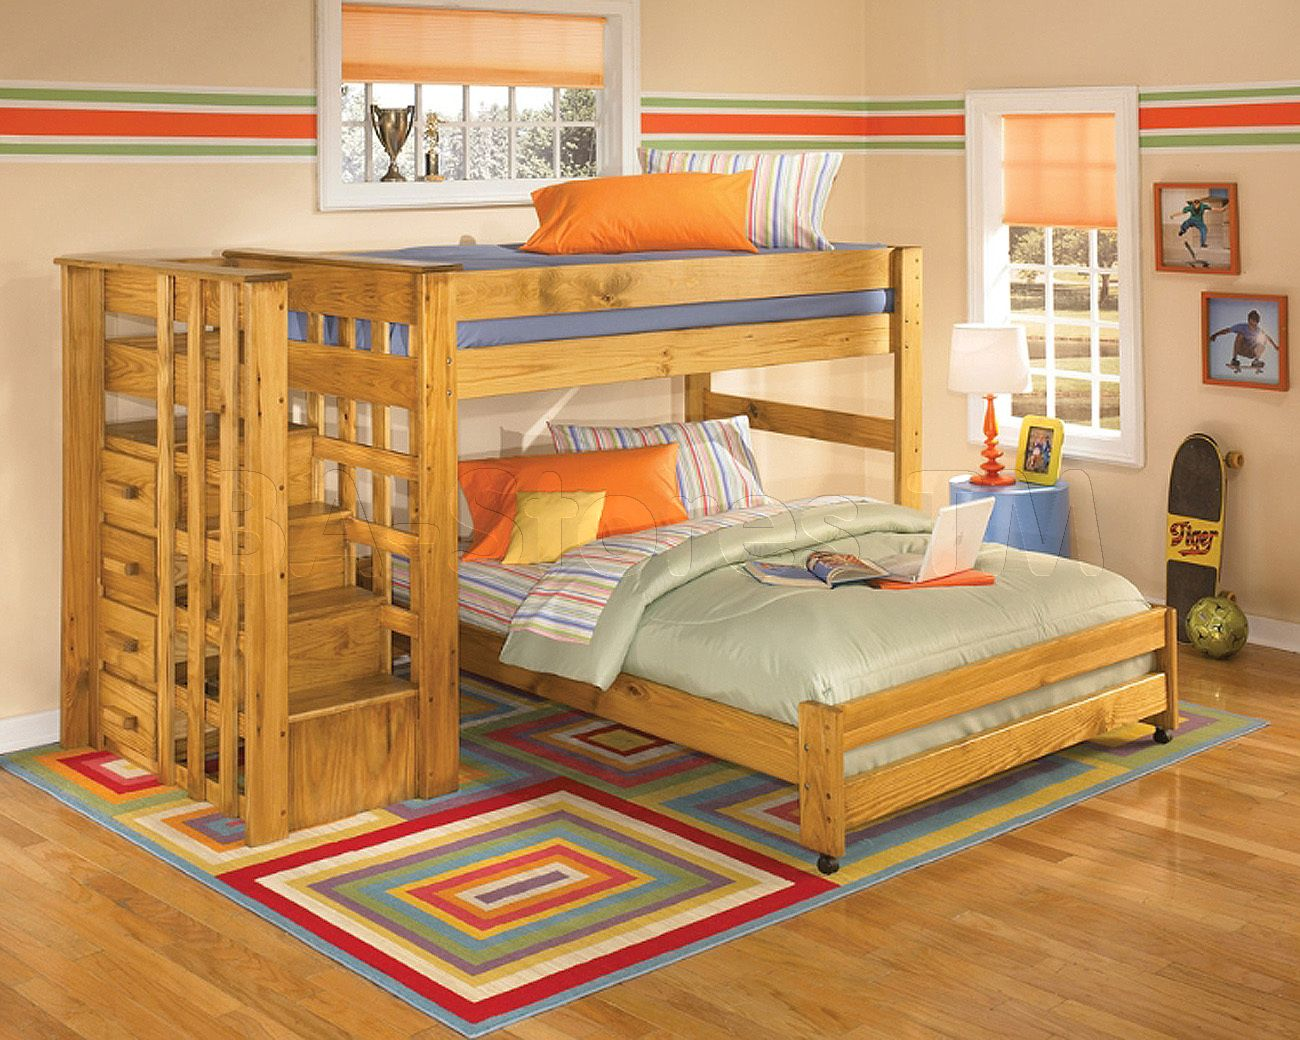 Twin Over Full Loft Bunk Bed With Stair Step Too Cute